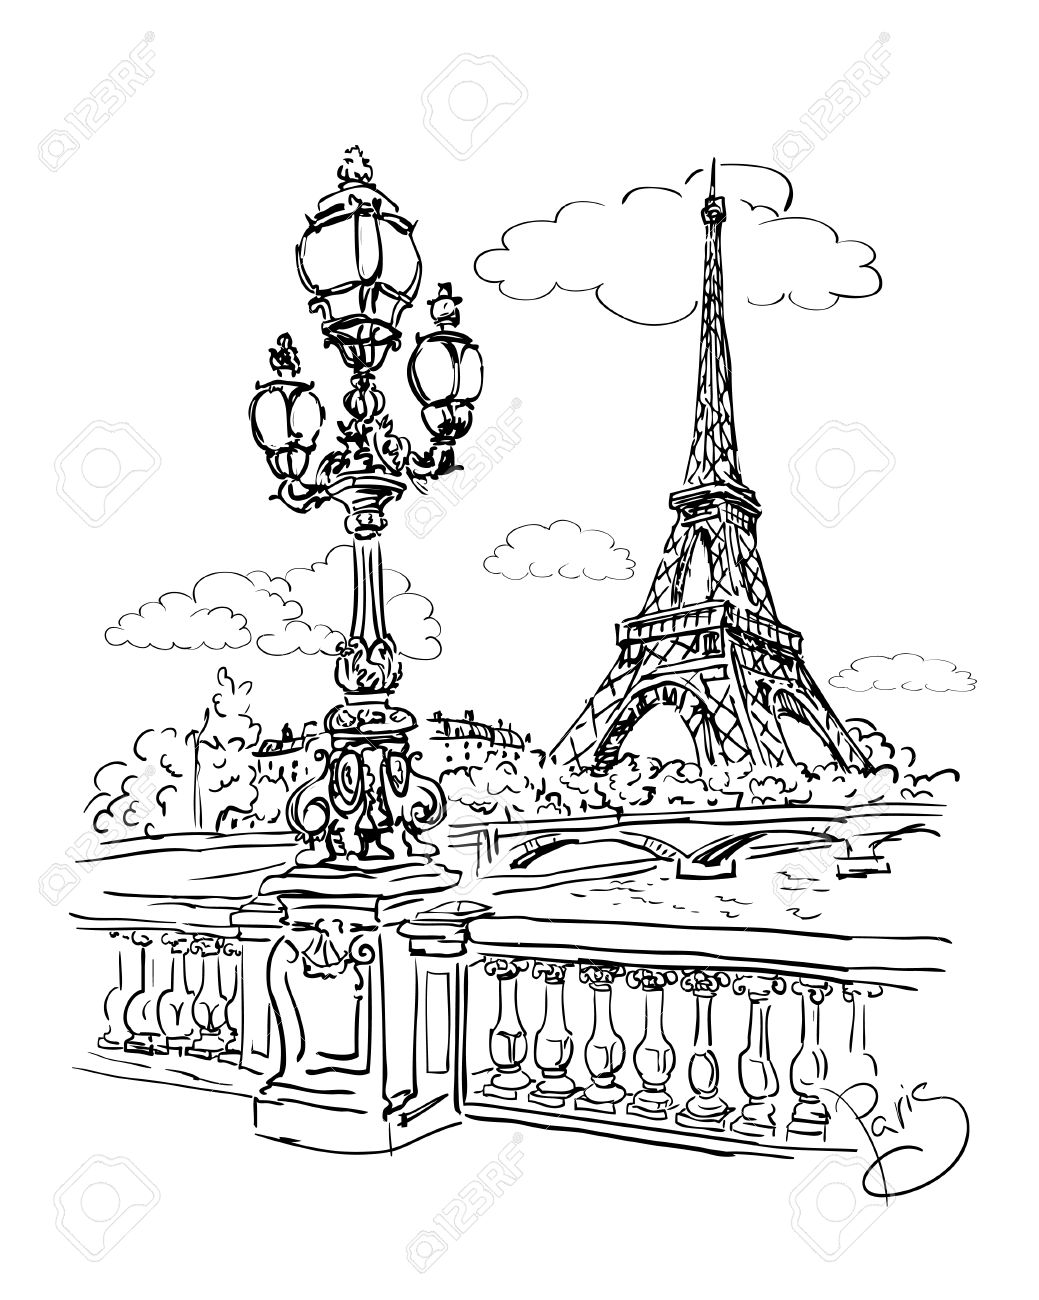 The Best Free Torre Drawing Images Download From 29 Free Drawings